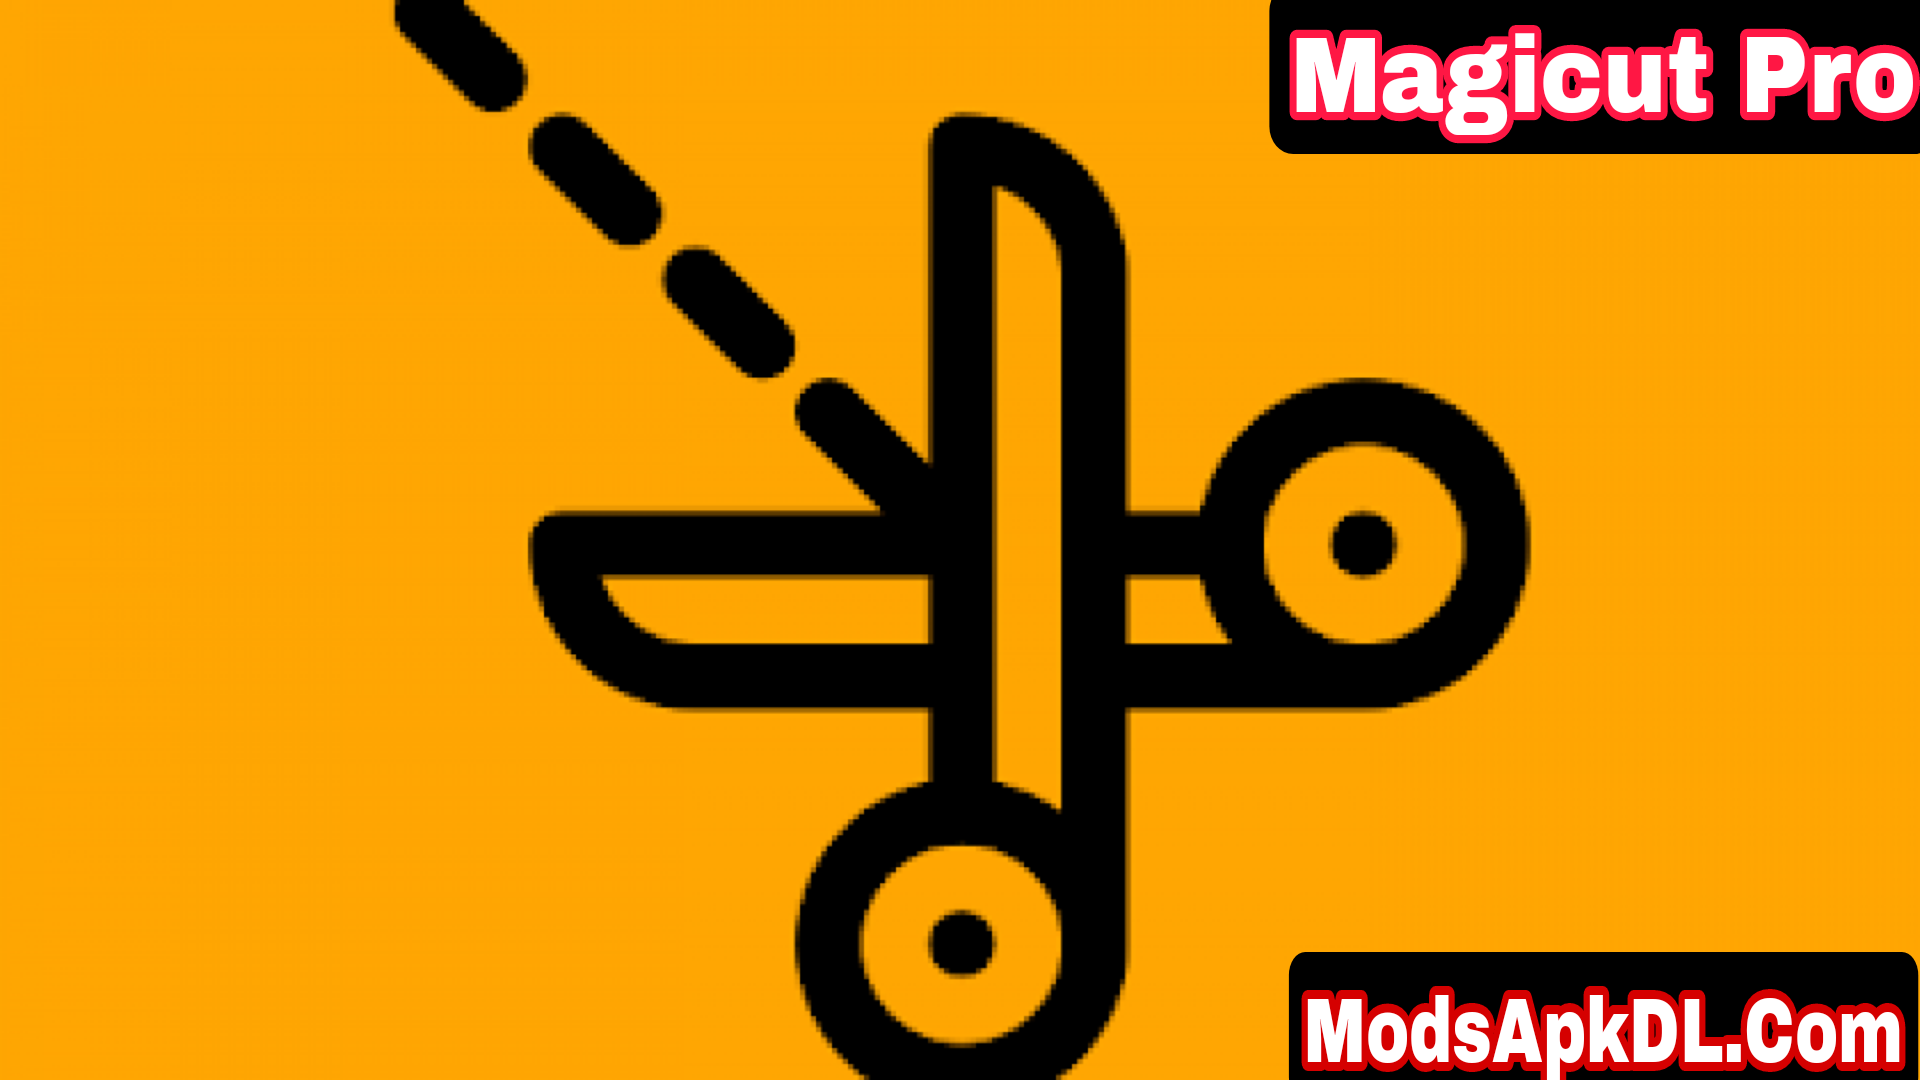 MagiCut Mod Apk 4.5.5.2 Download (Pro Unlocked) For Android